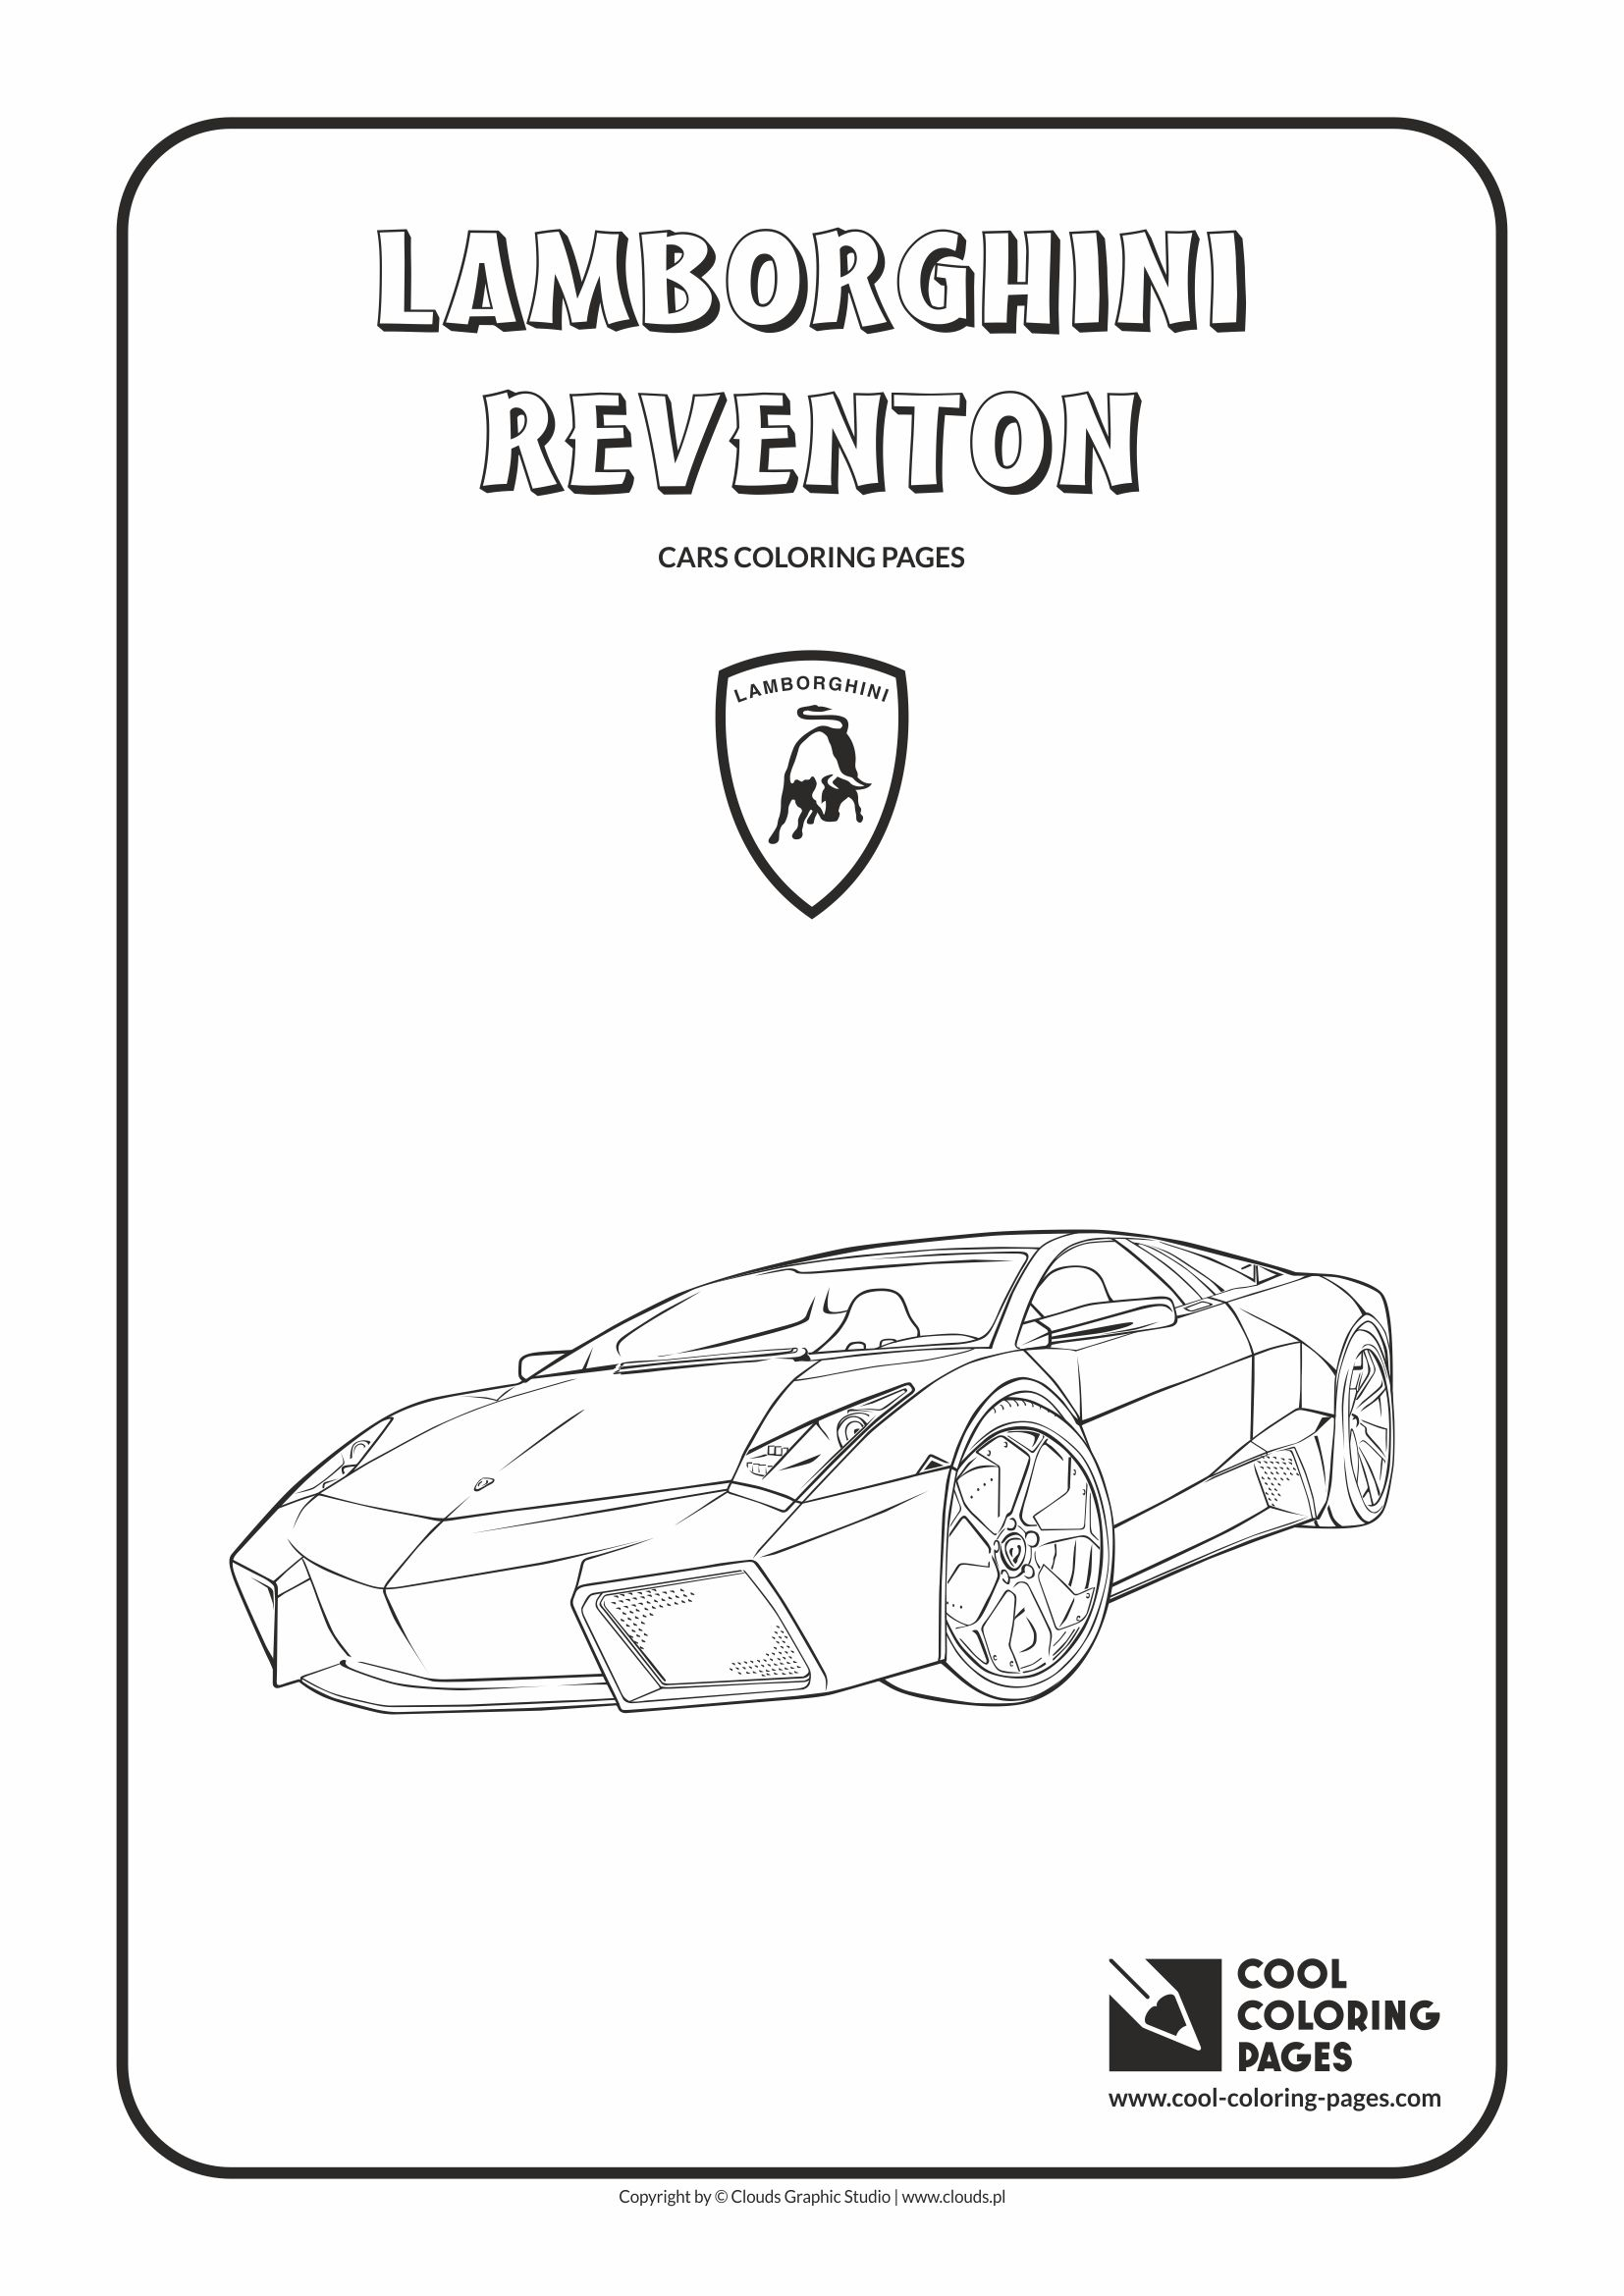 Cool Coloring Pages - Vehicles / Lamborghini Reventon / Coloring page with Lamborghini Reventon